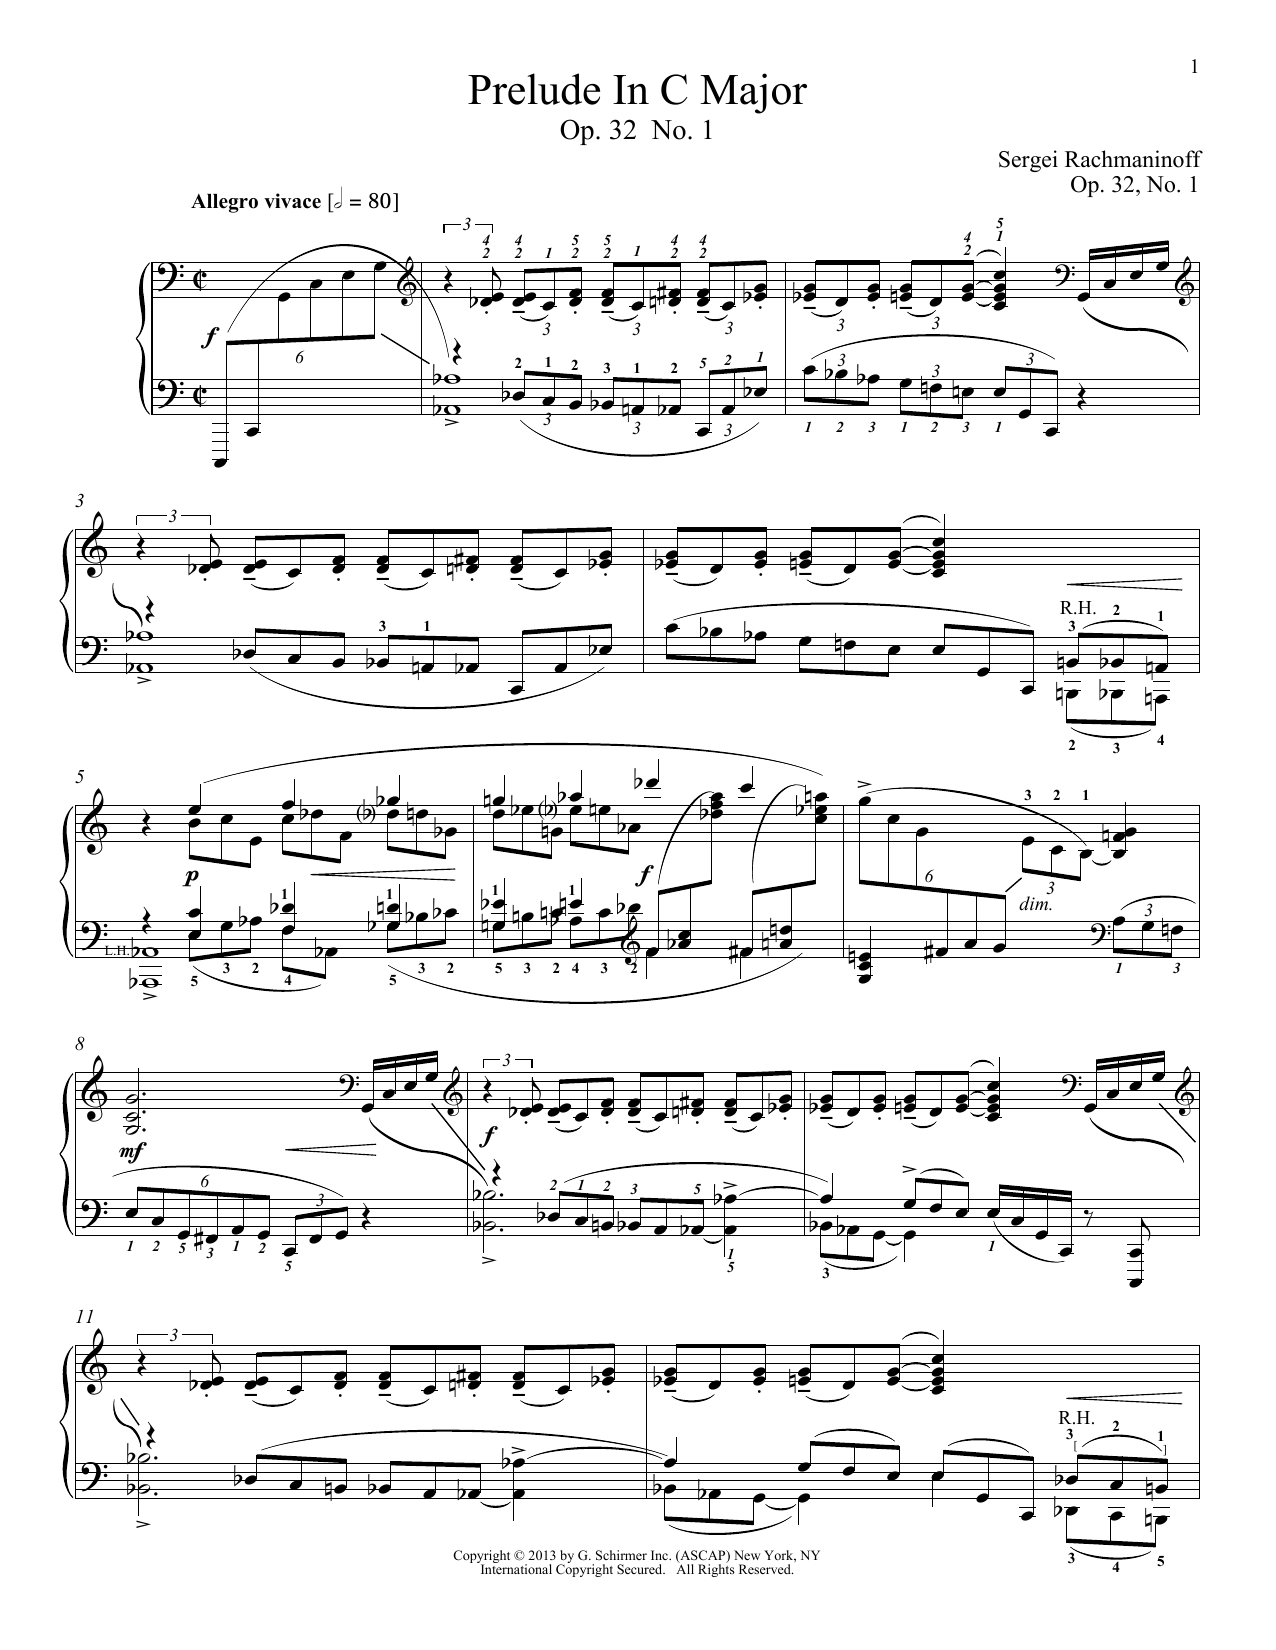 Alexandre Dossin Prelude In C Major, Op. 32, No. 1 sheet music notes and chords. Download Printable PDF.